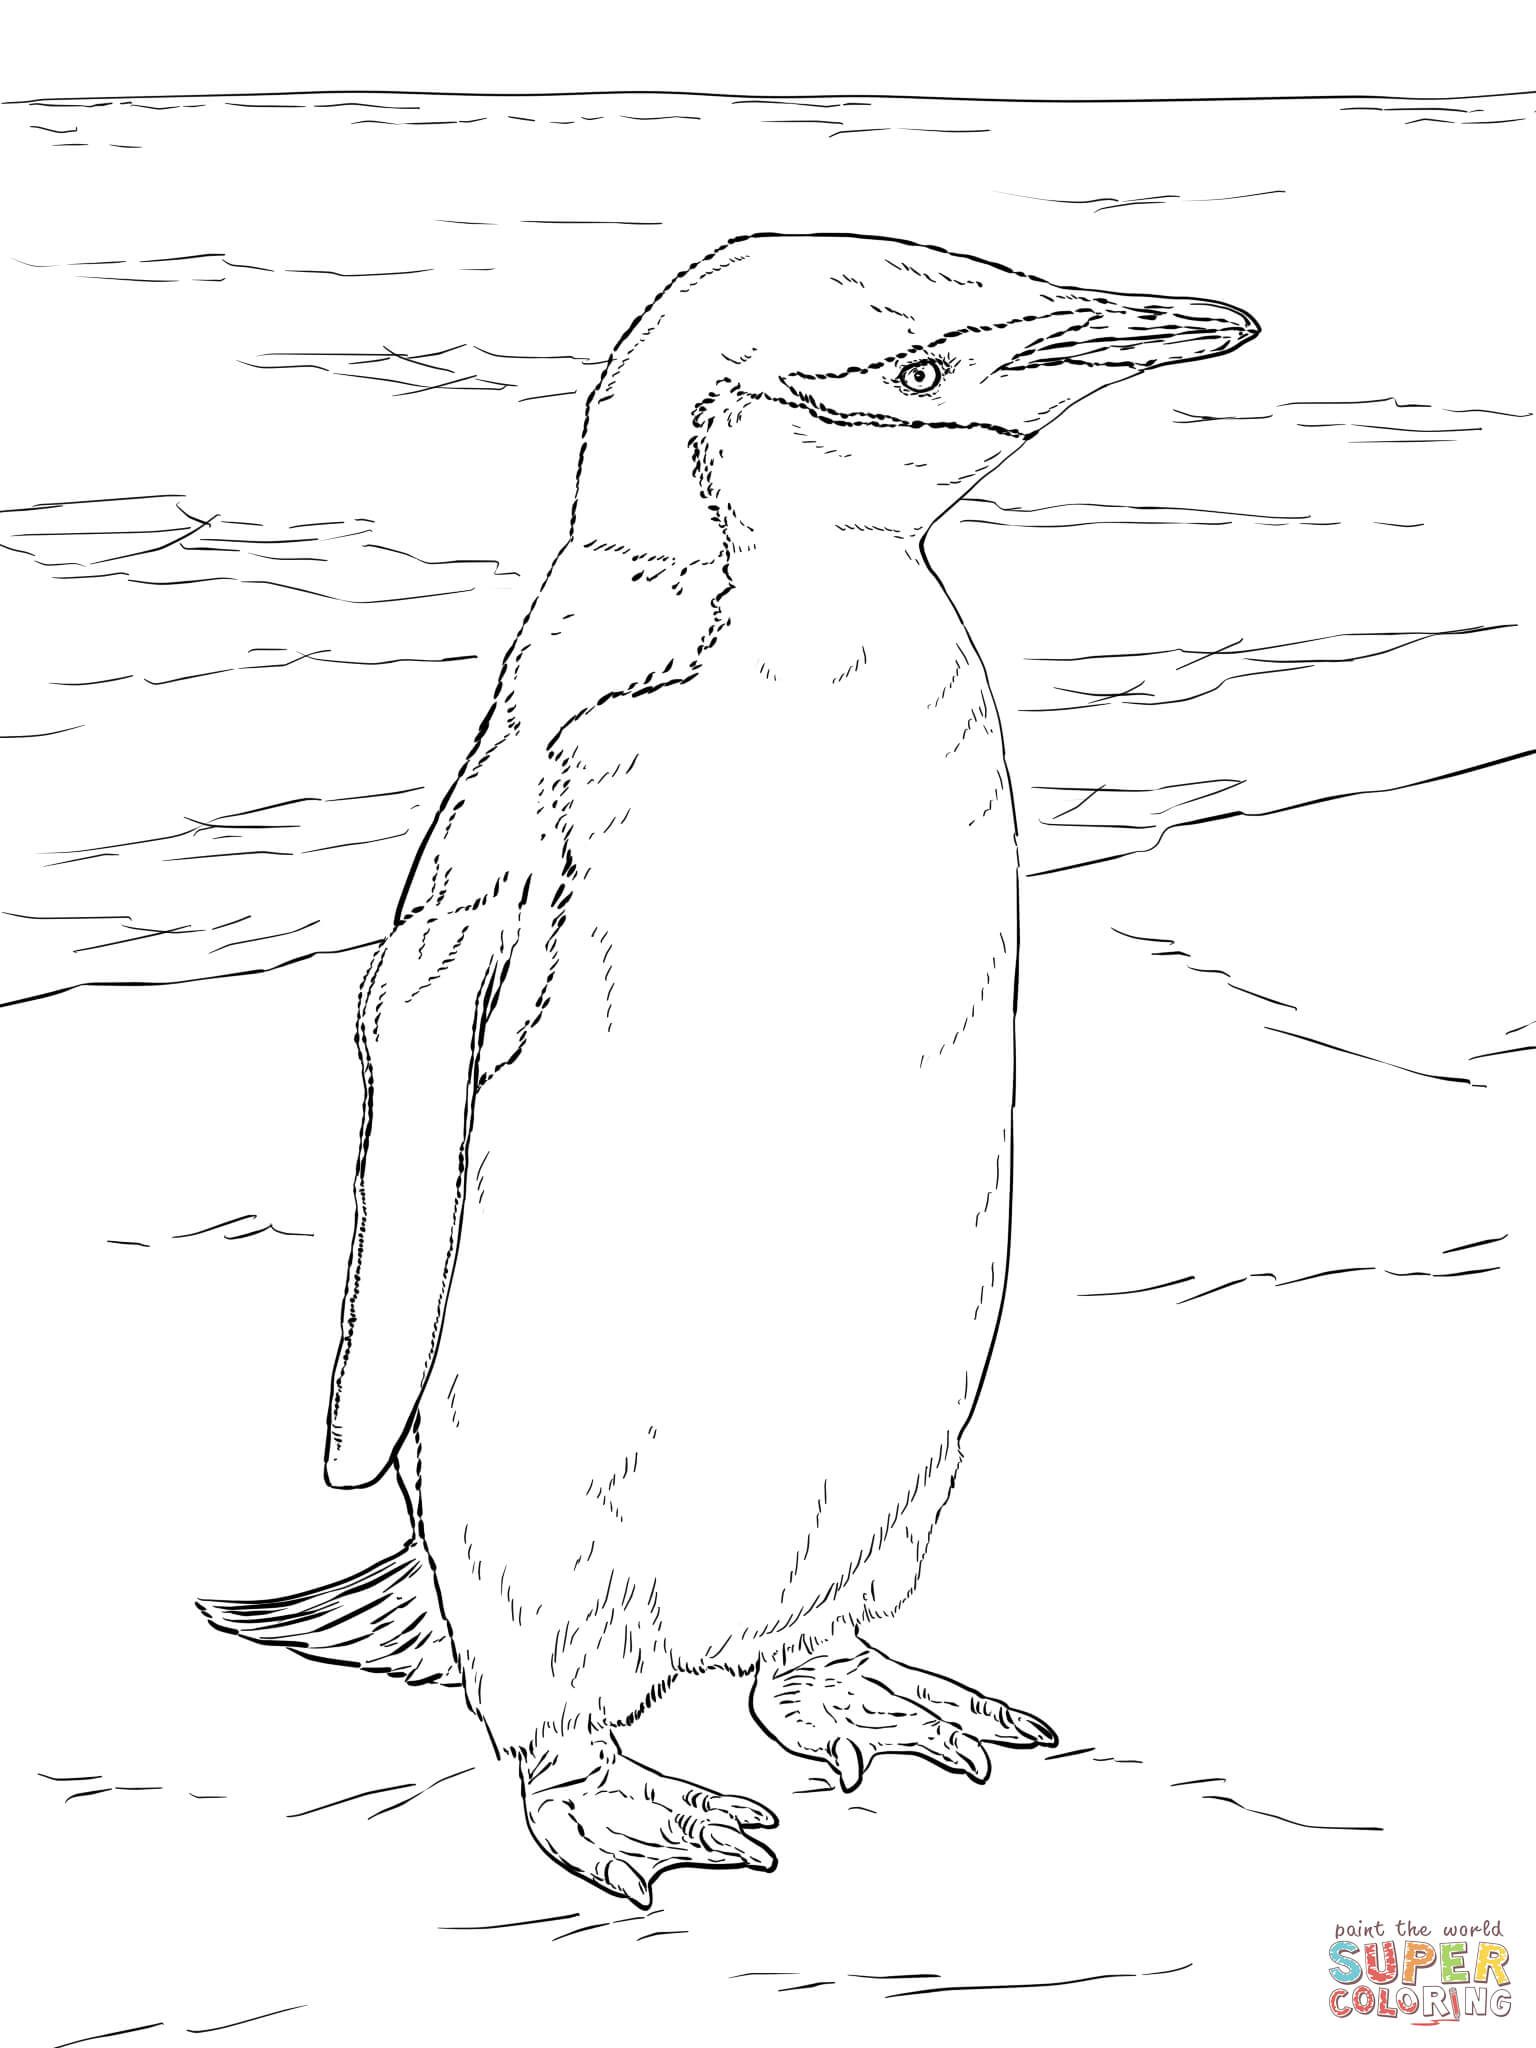 Realistic Chinstrap Penguin | Super Coloring | coloring pages ...